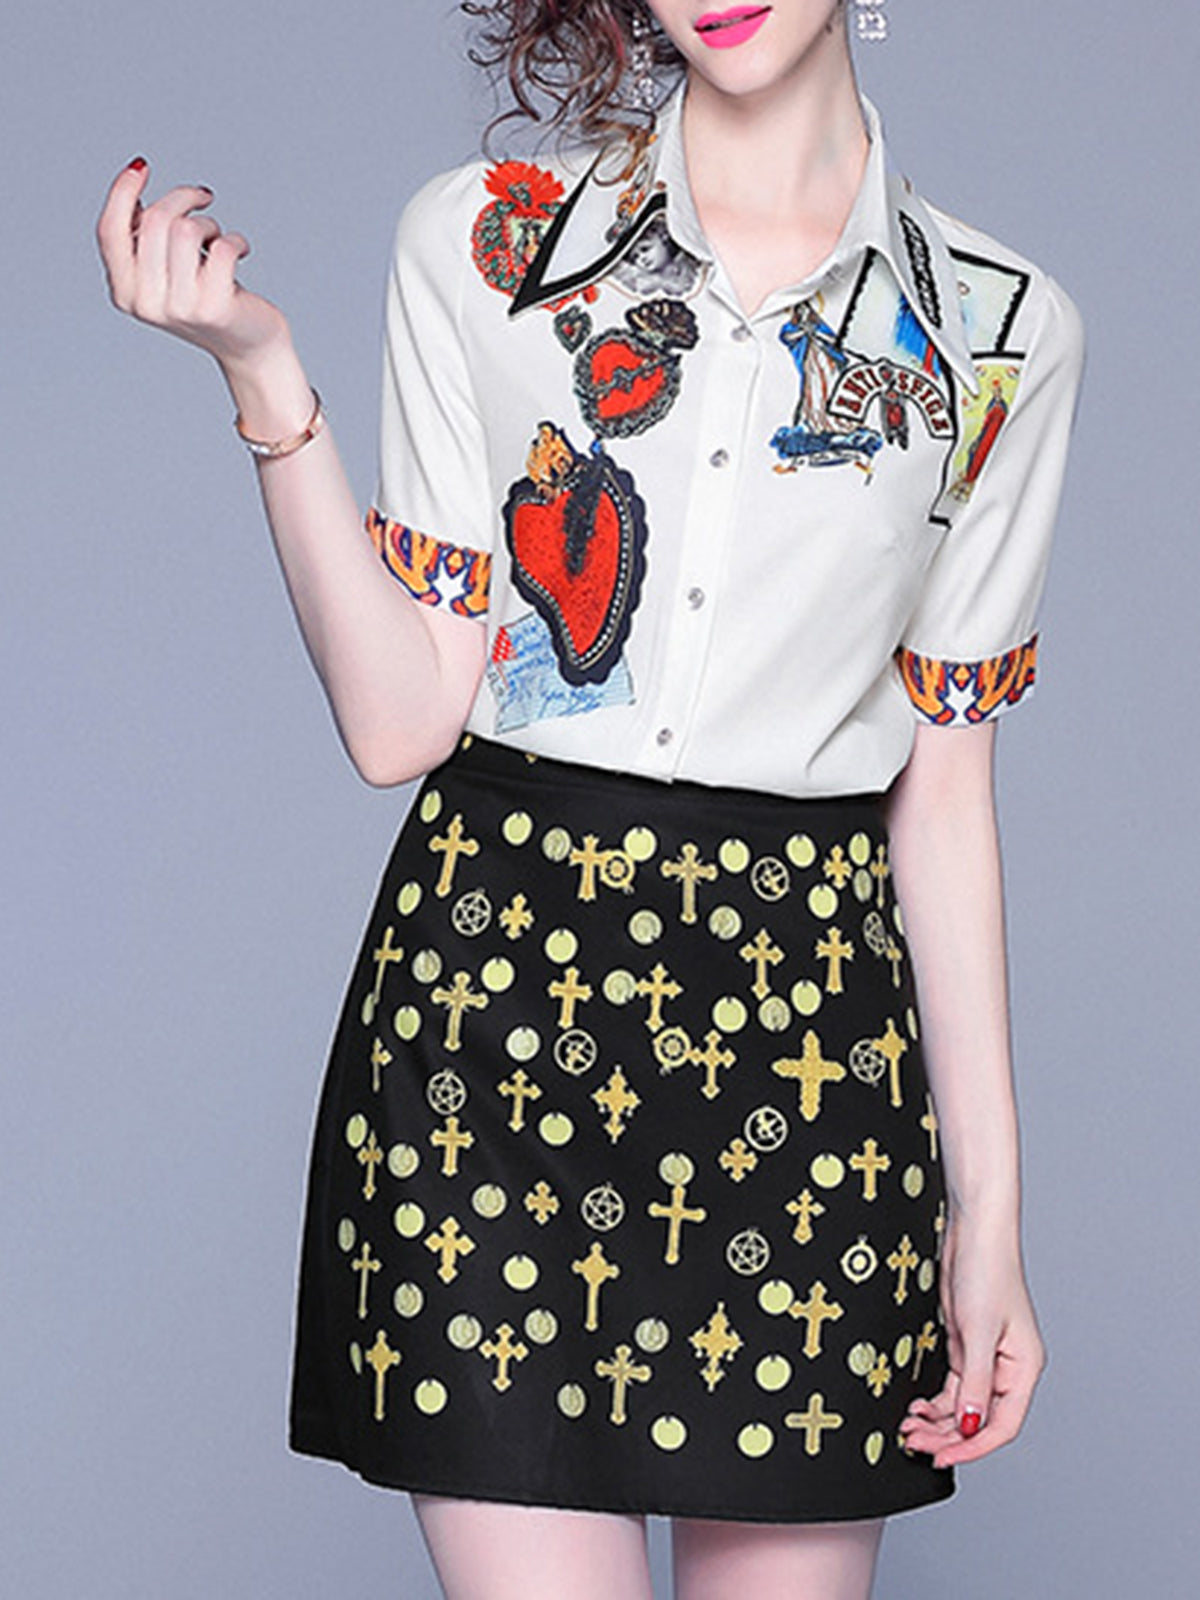 Graphic Printed Elegant Top with Skirt Set